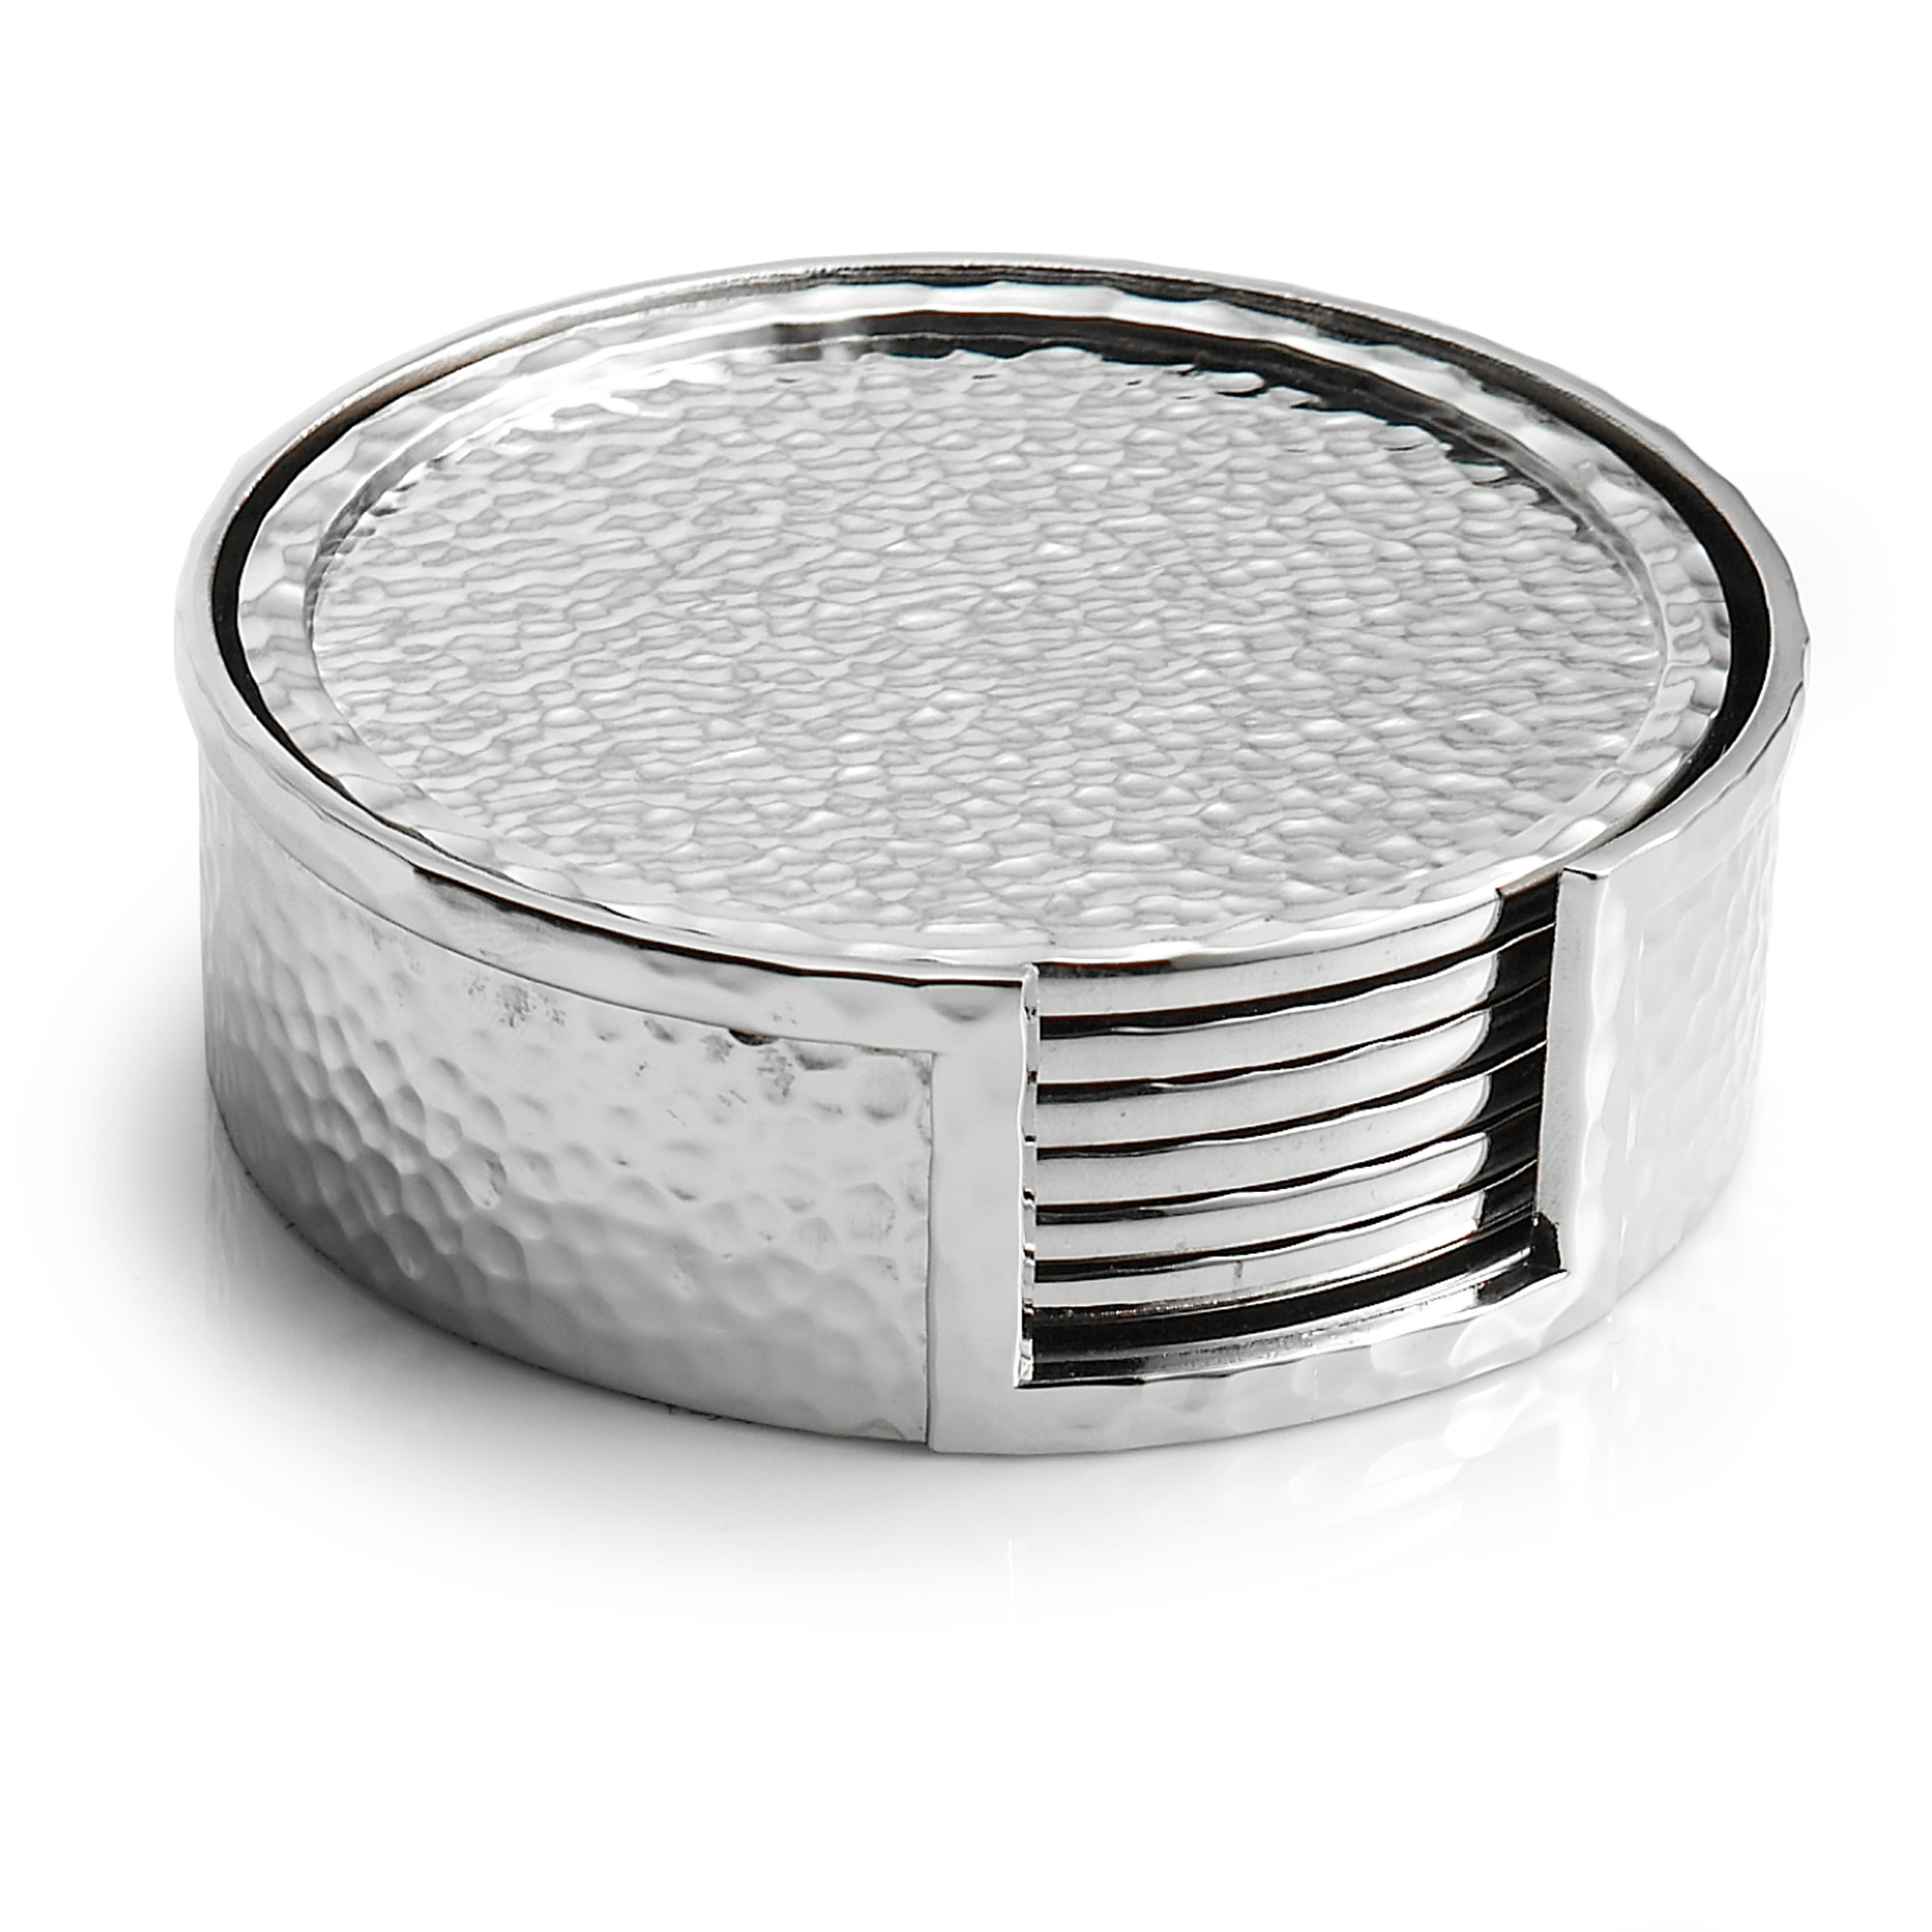 Michael Aram Hammertone Silver Coasters, Set of 6